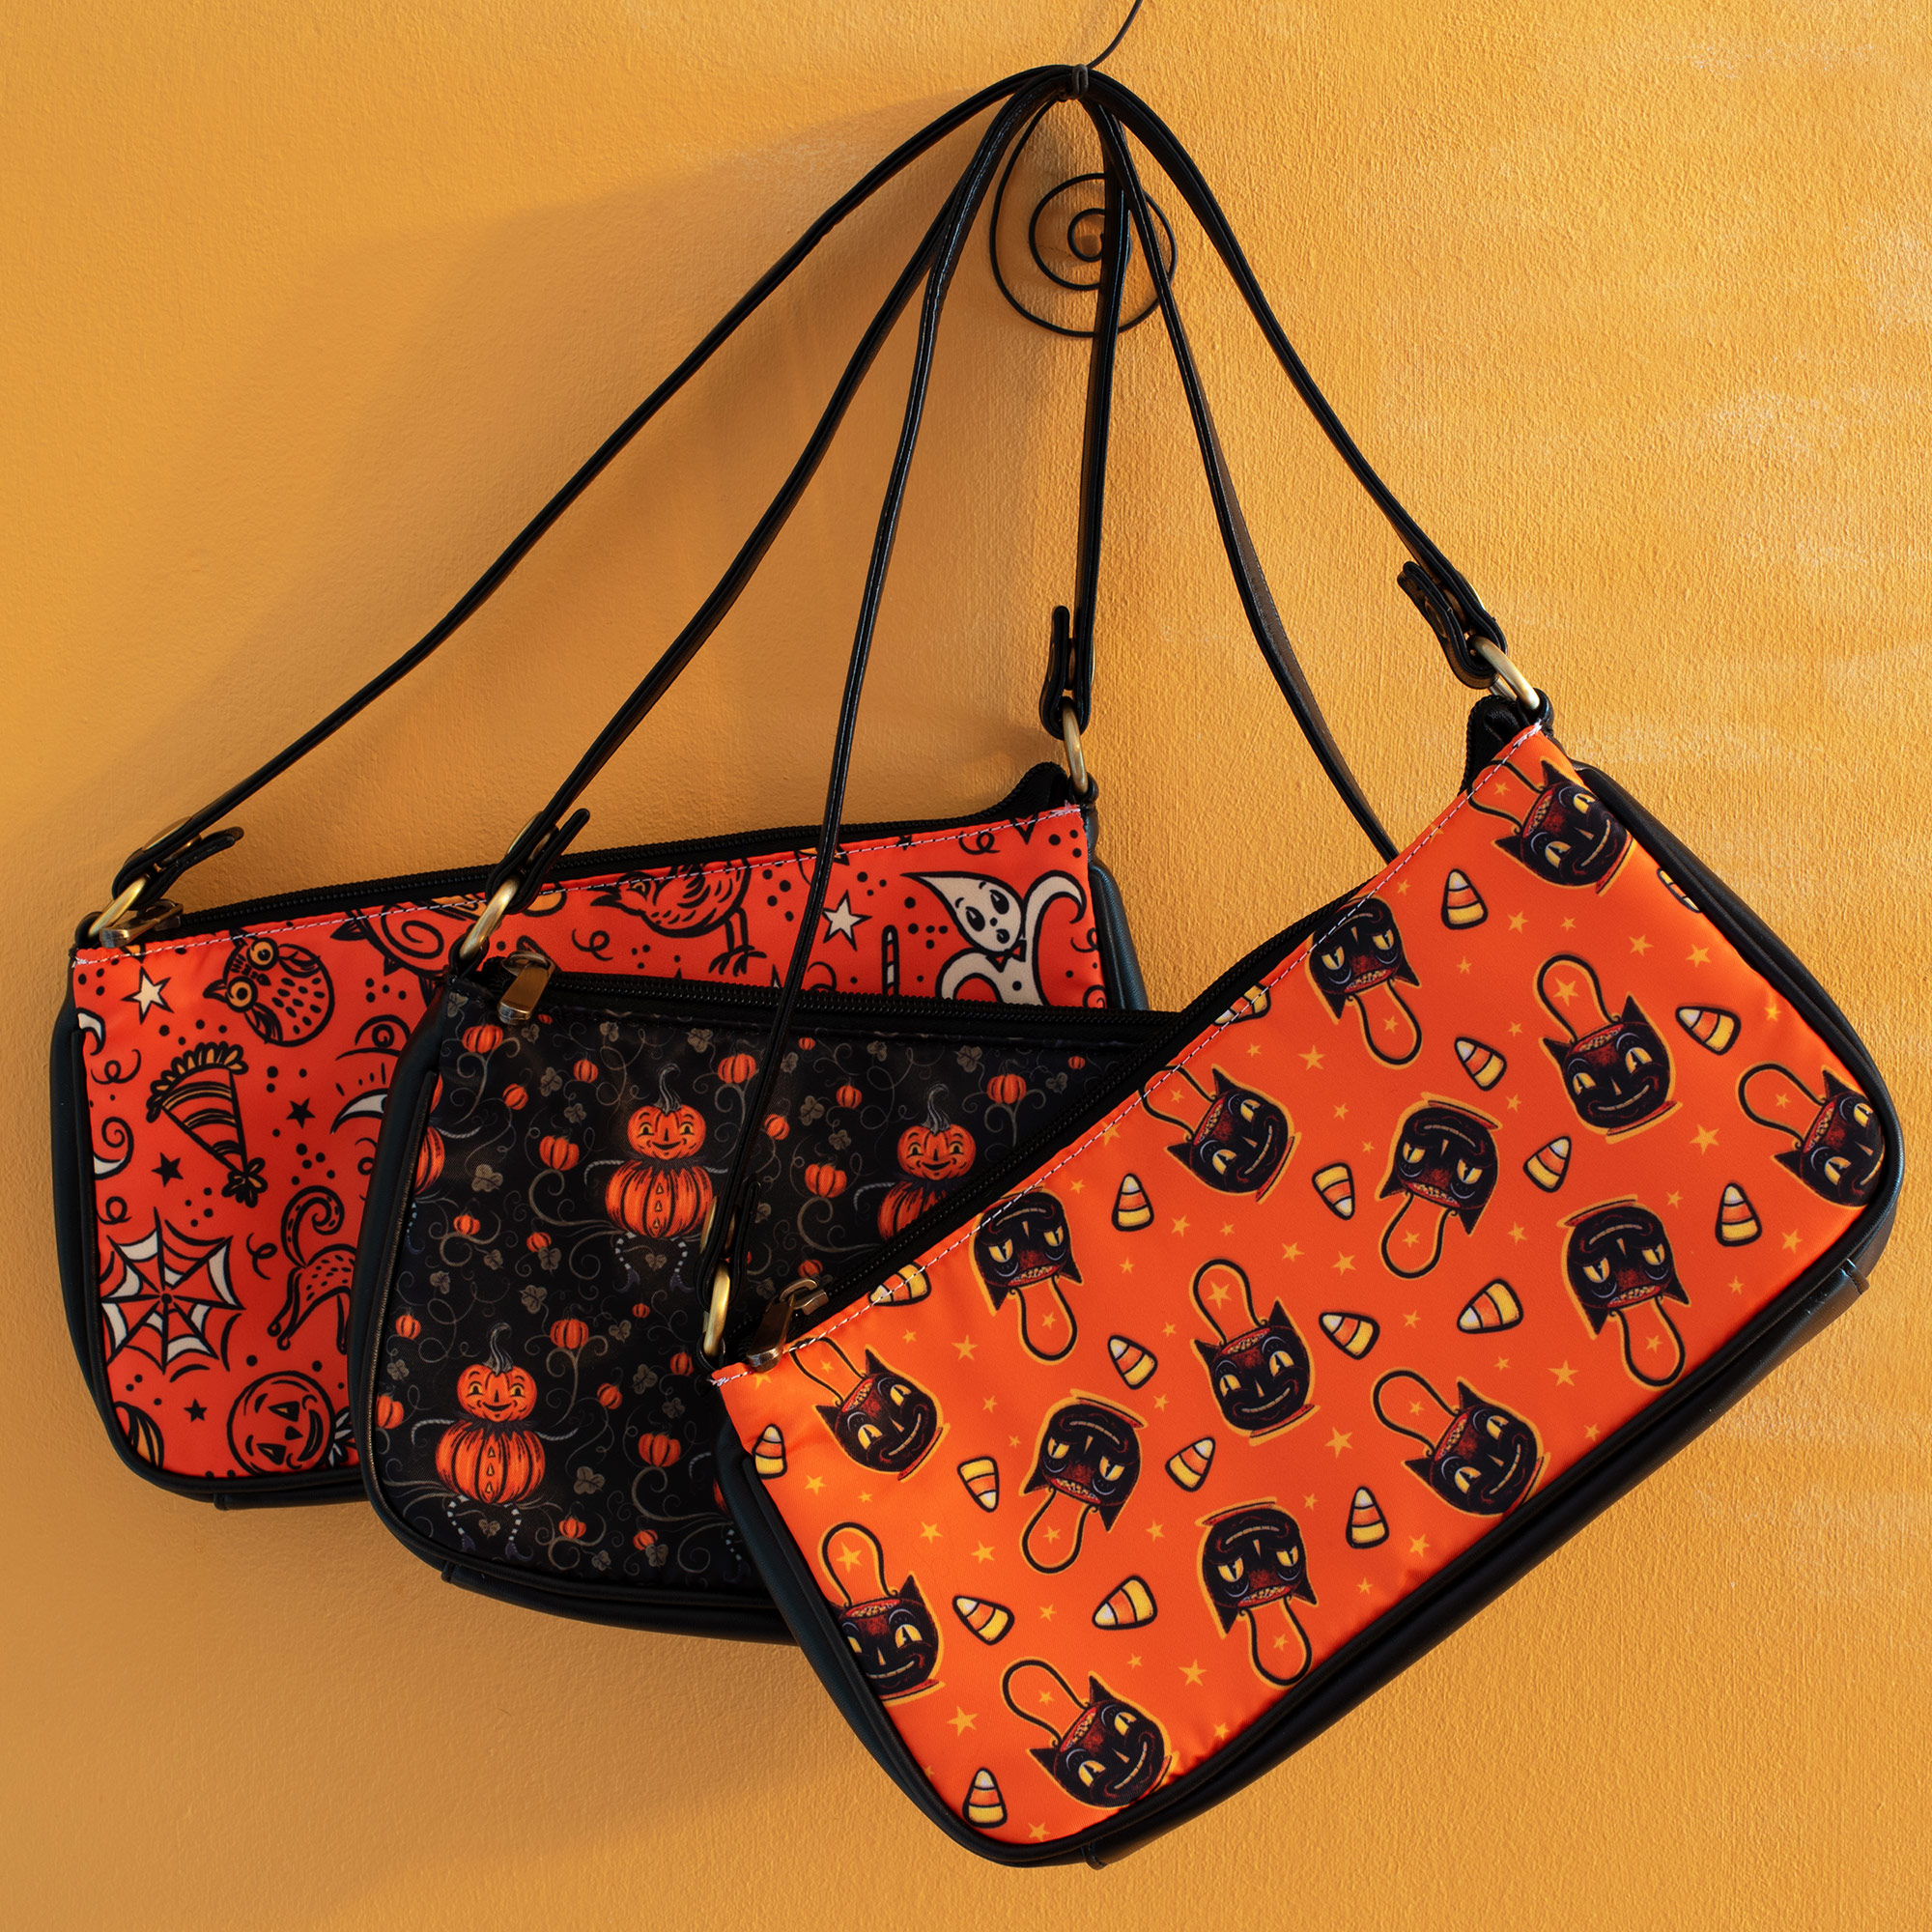 More spooky stylish purses to Collect and Carry!